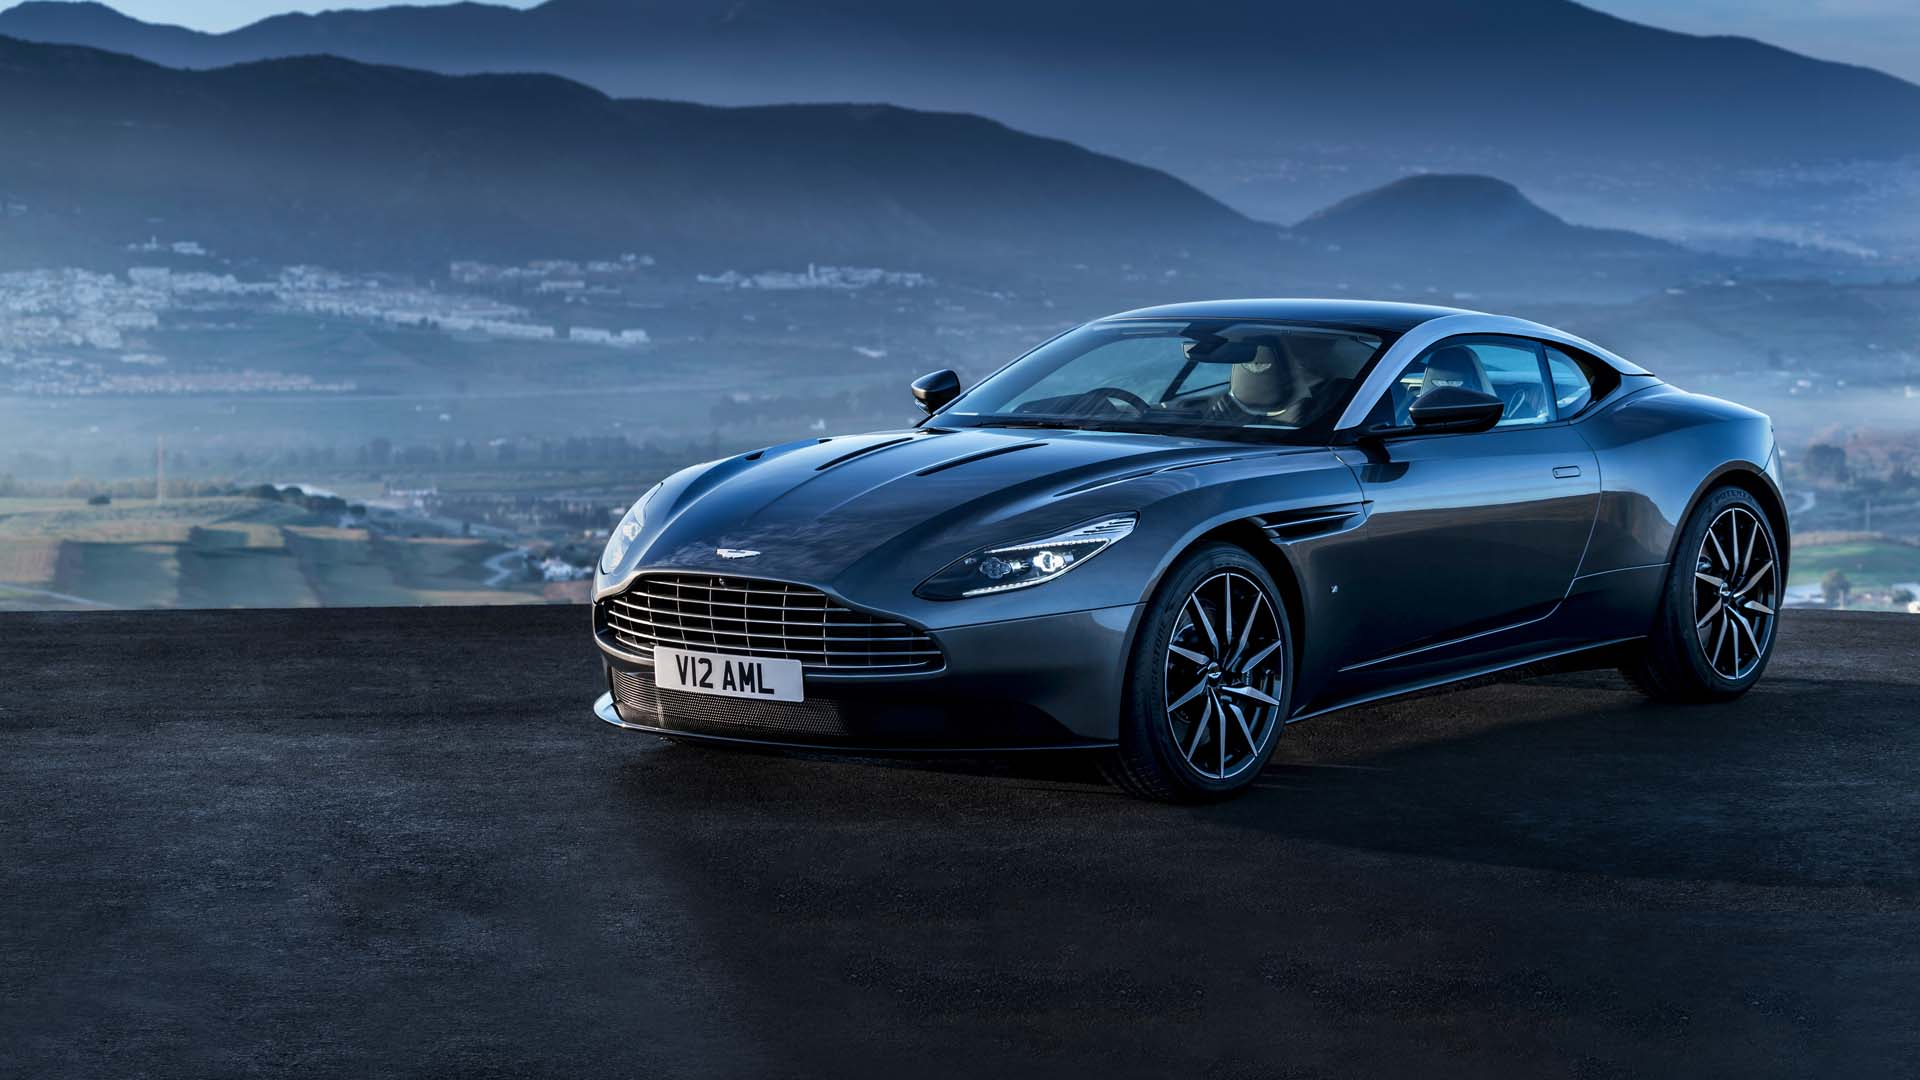 Aston Martin Backgrounds, Compatible - PC, Mobile, Gadgets| 1920x1080 px